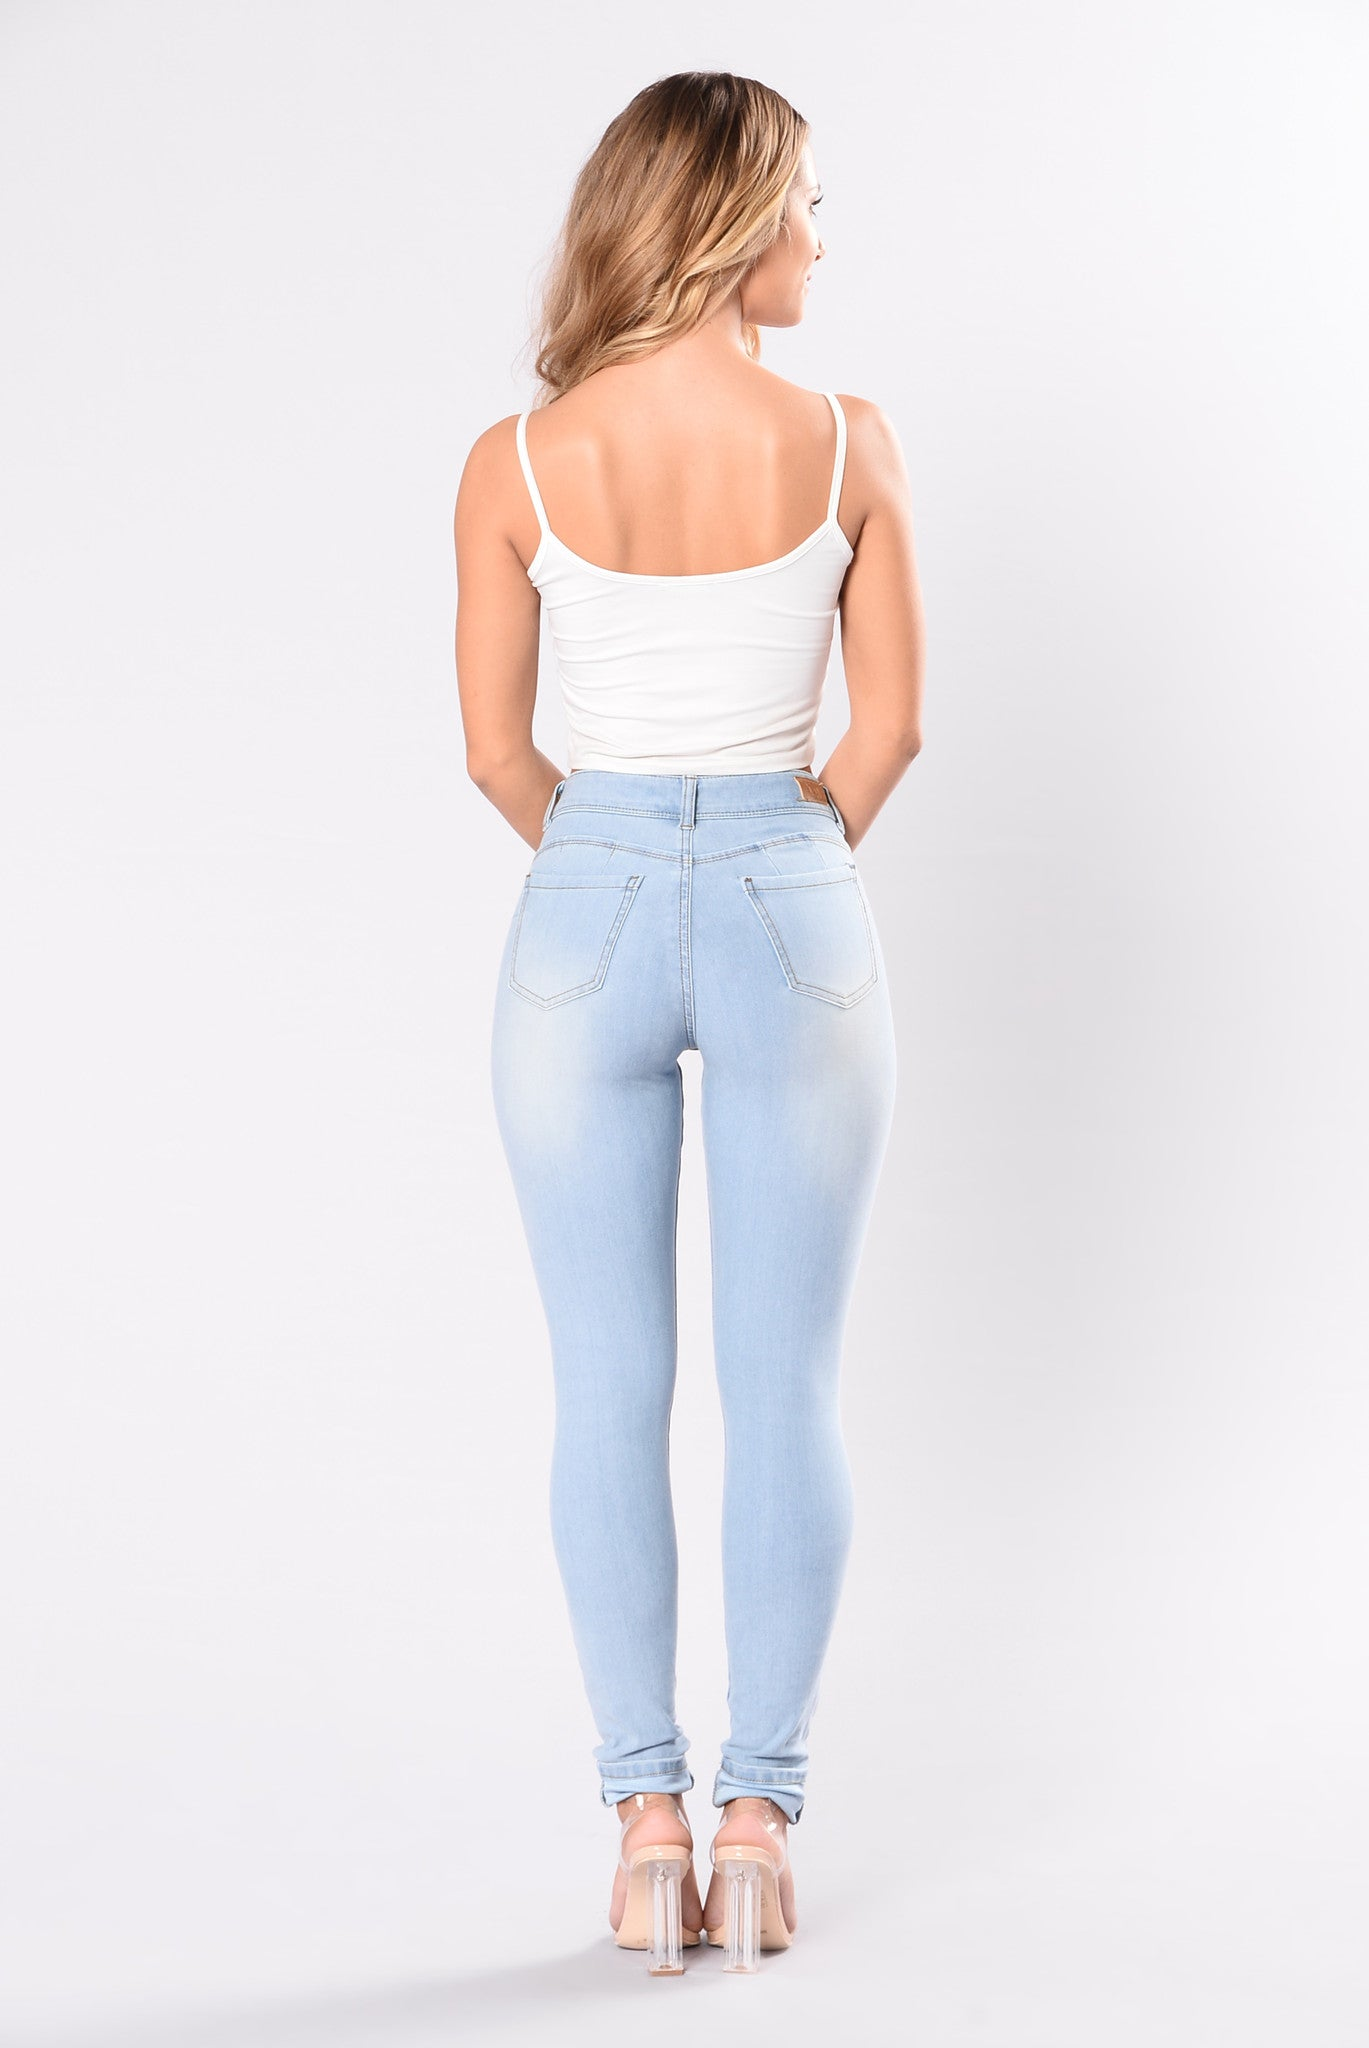 Matching Images >> Breaking Necks Booty Lifting Jeans - Light Wash